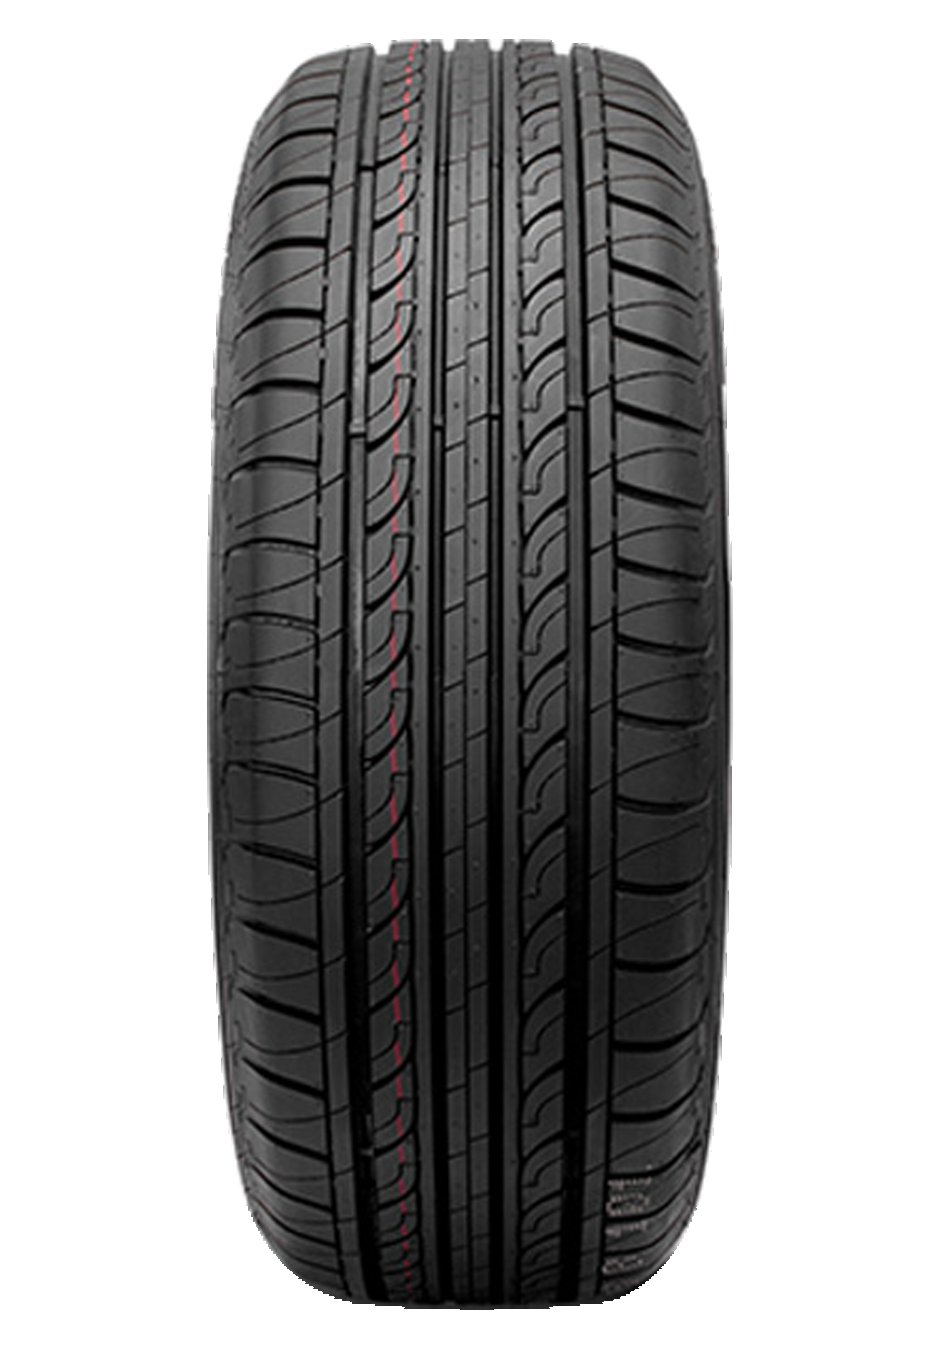 Tires Price In China 175/70r13 185/65r14 185/65r15 195